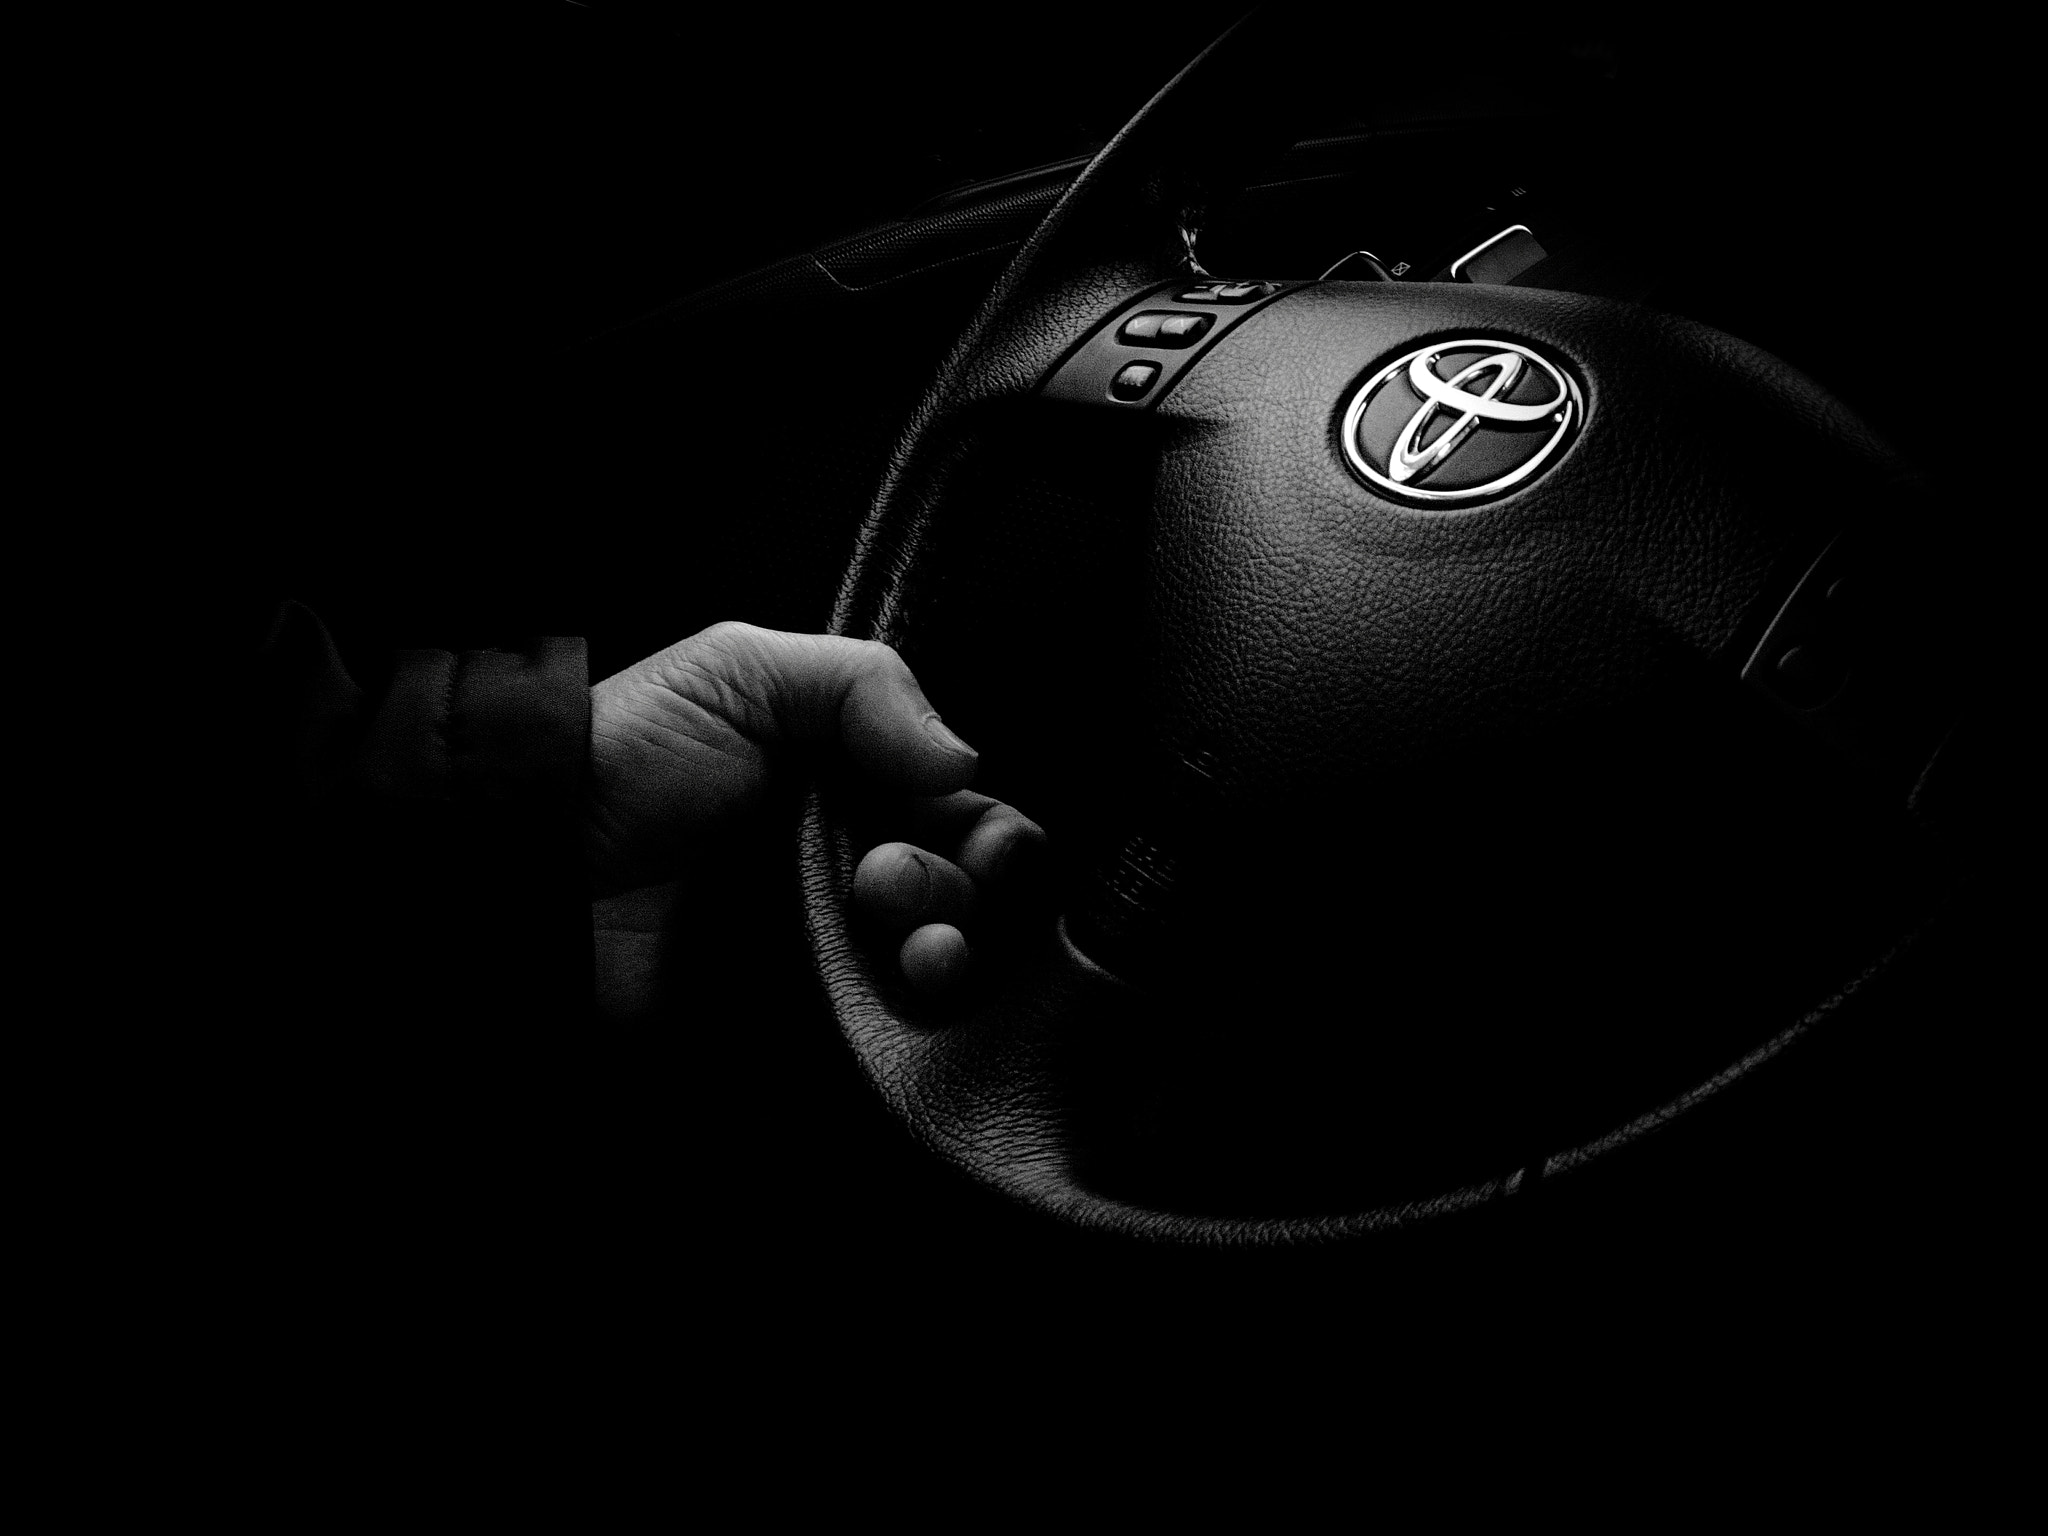 Photograph HIS HAND IS ON THE WHEEL by JUNE FERROL on 500px